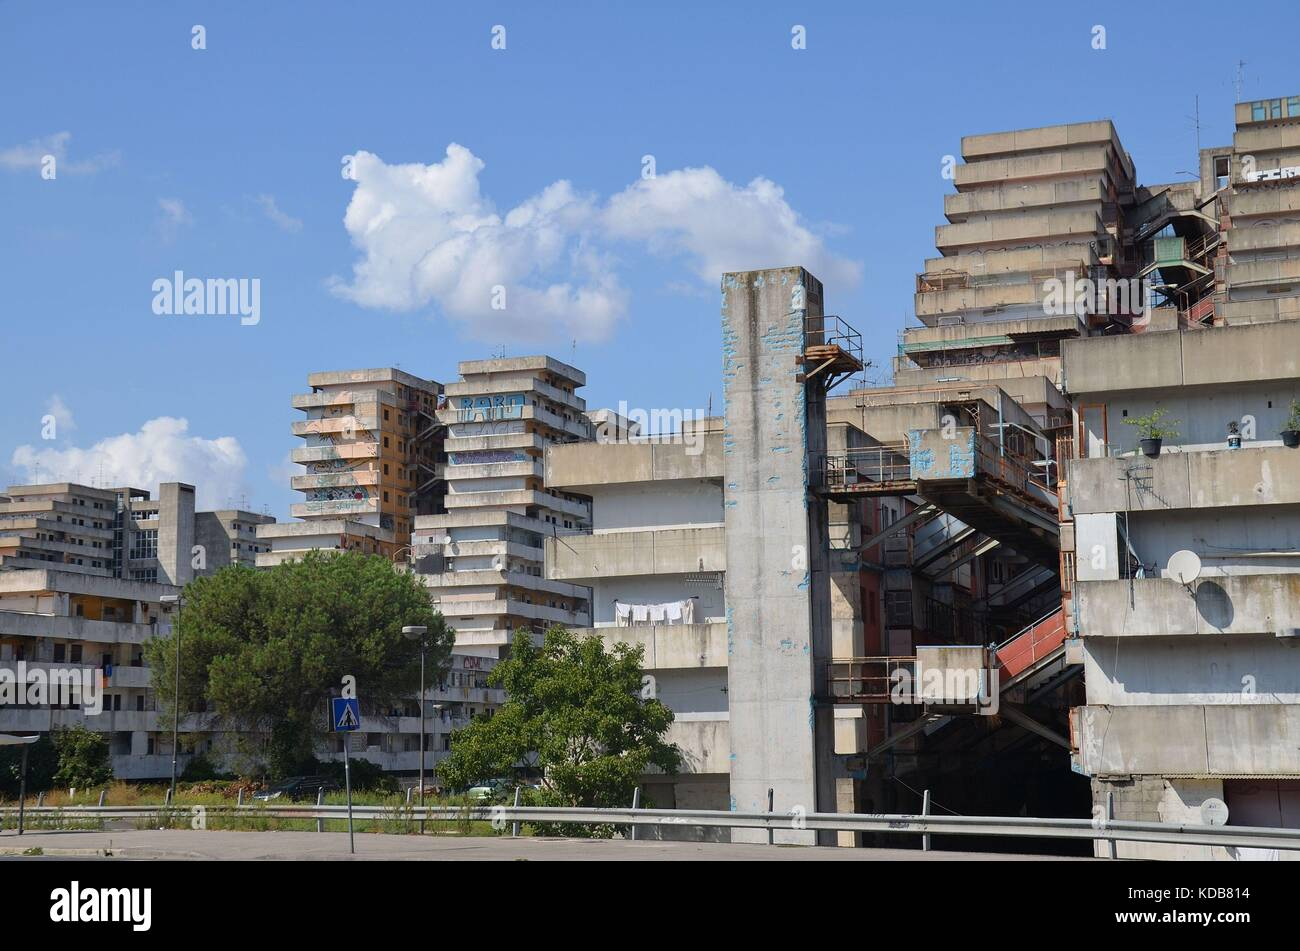 The Vele ('Sails') of Scampia in the Northern periphery of Naples. - Stock Image